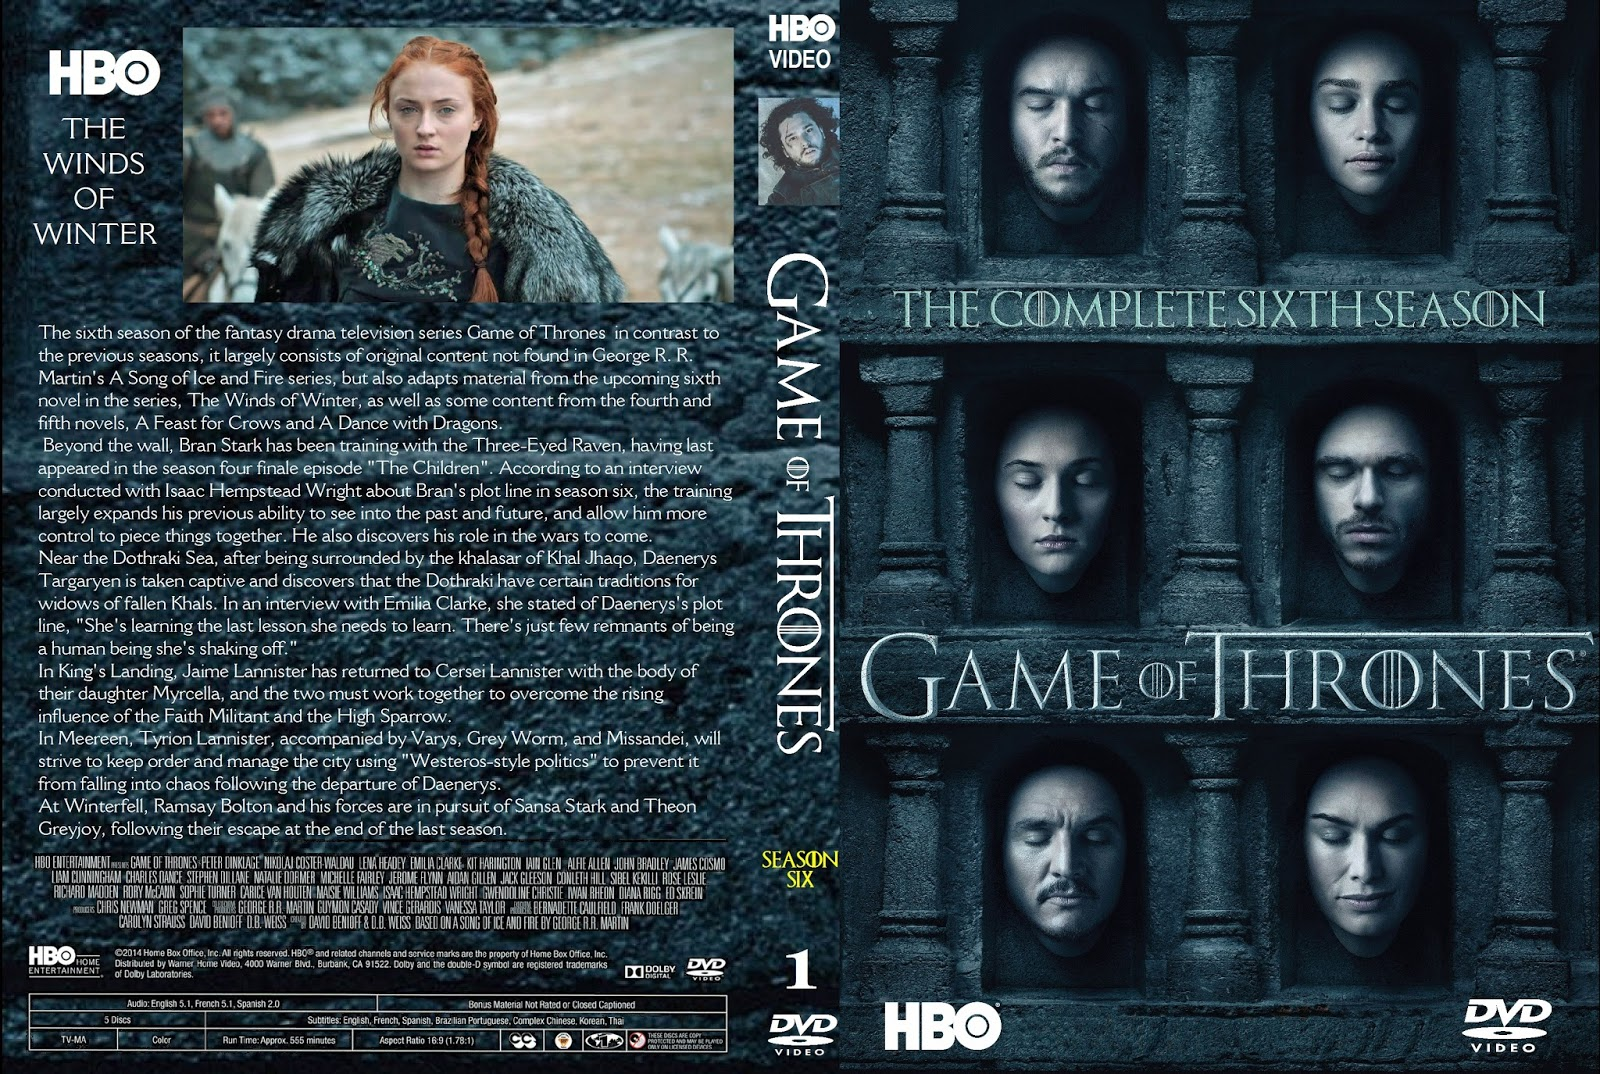 Download Game of Thrones S06E10 480p HDTV XviD Dublado Game 2Bof 2BThrones 2B6 25C2 25AA 2BTemporada 2B  2BXANDAODOWNLOAD